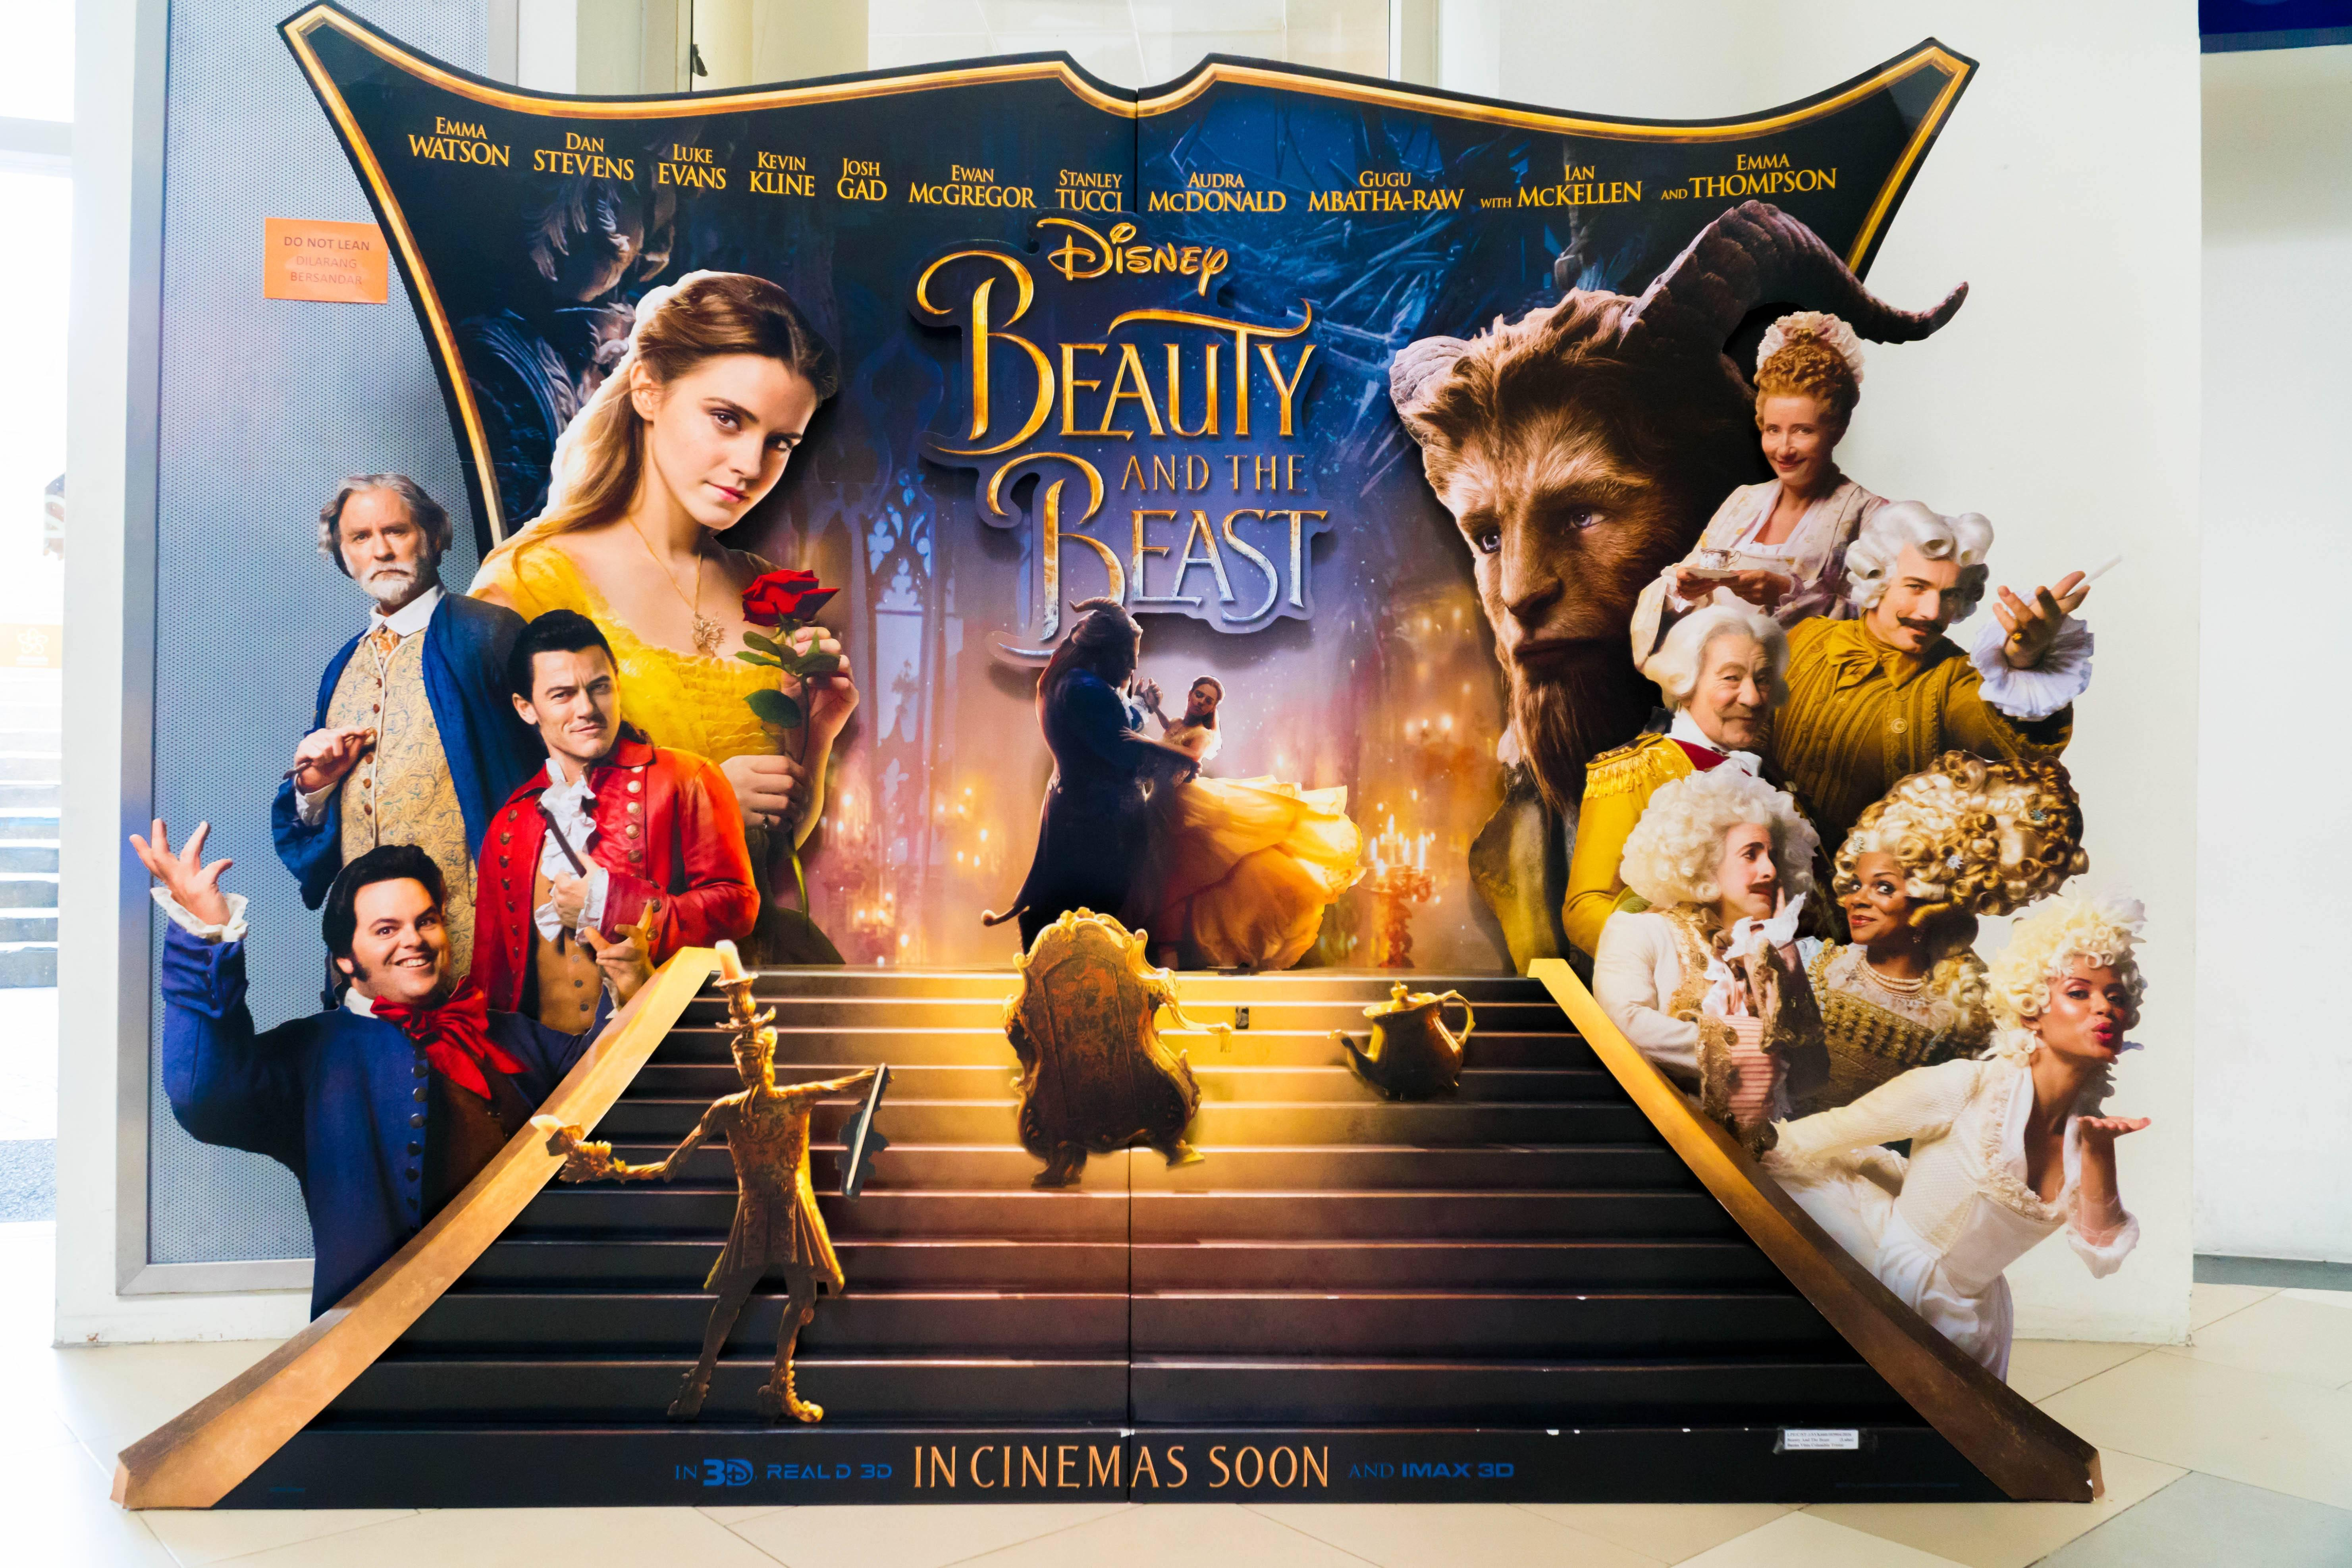 Disney Announces Beauty And The Beast Themed Cruise